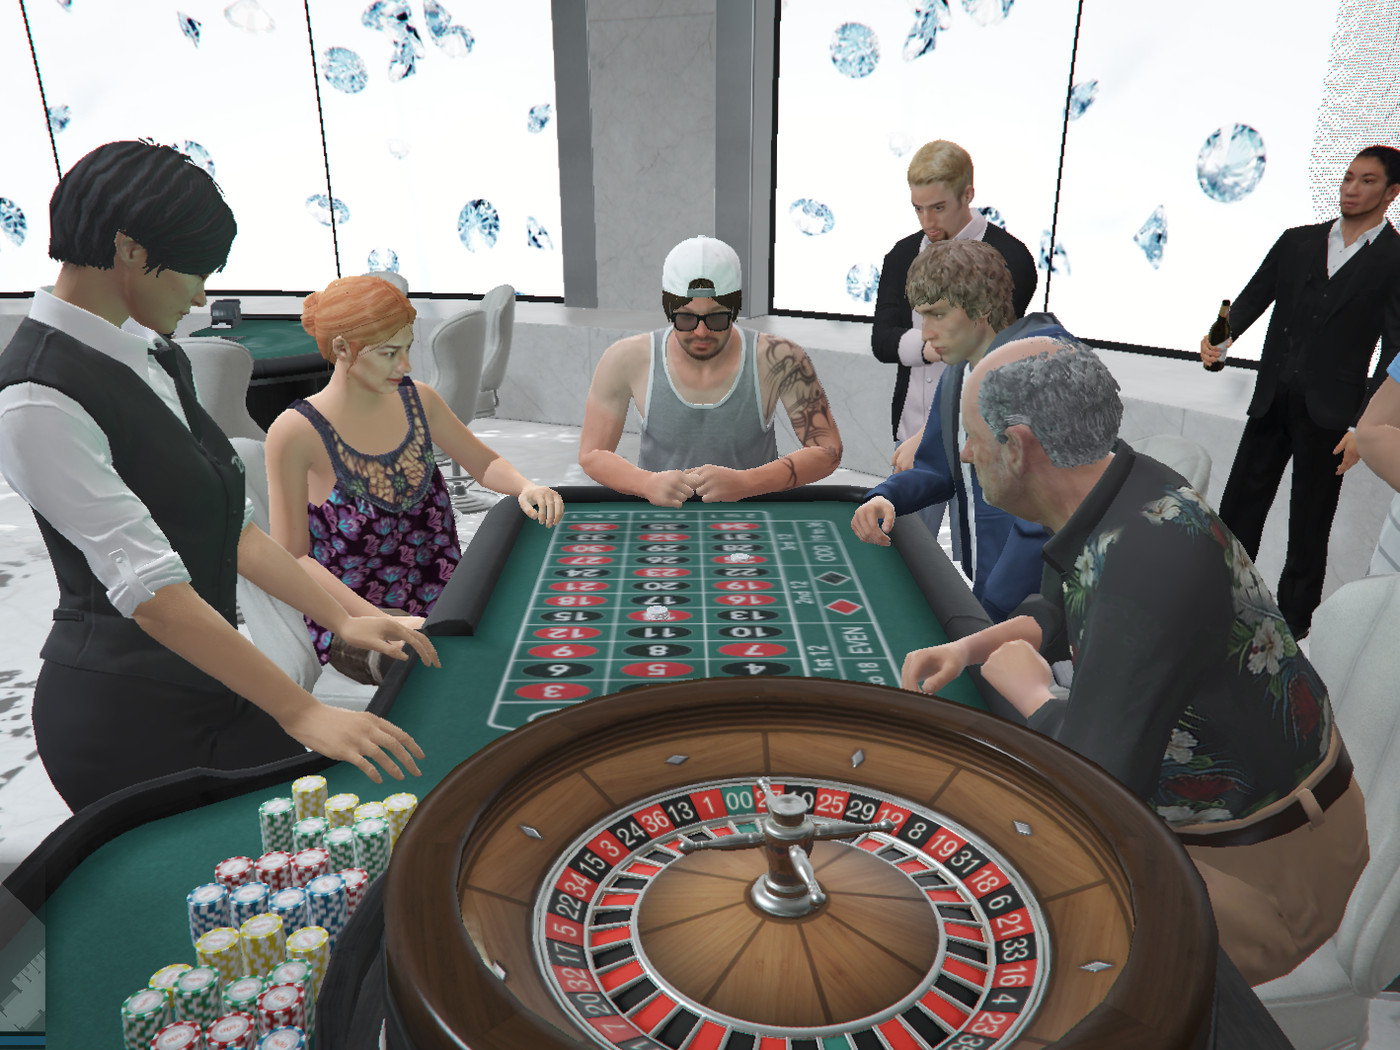 GTA Online players say they're going broke betting in the casino - Polygon